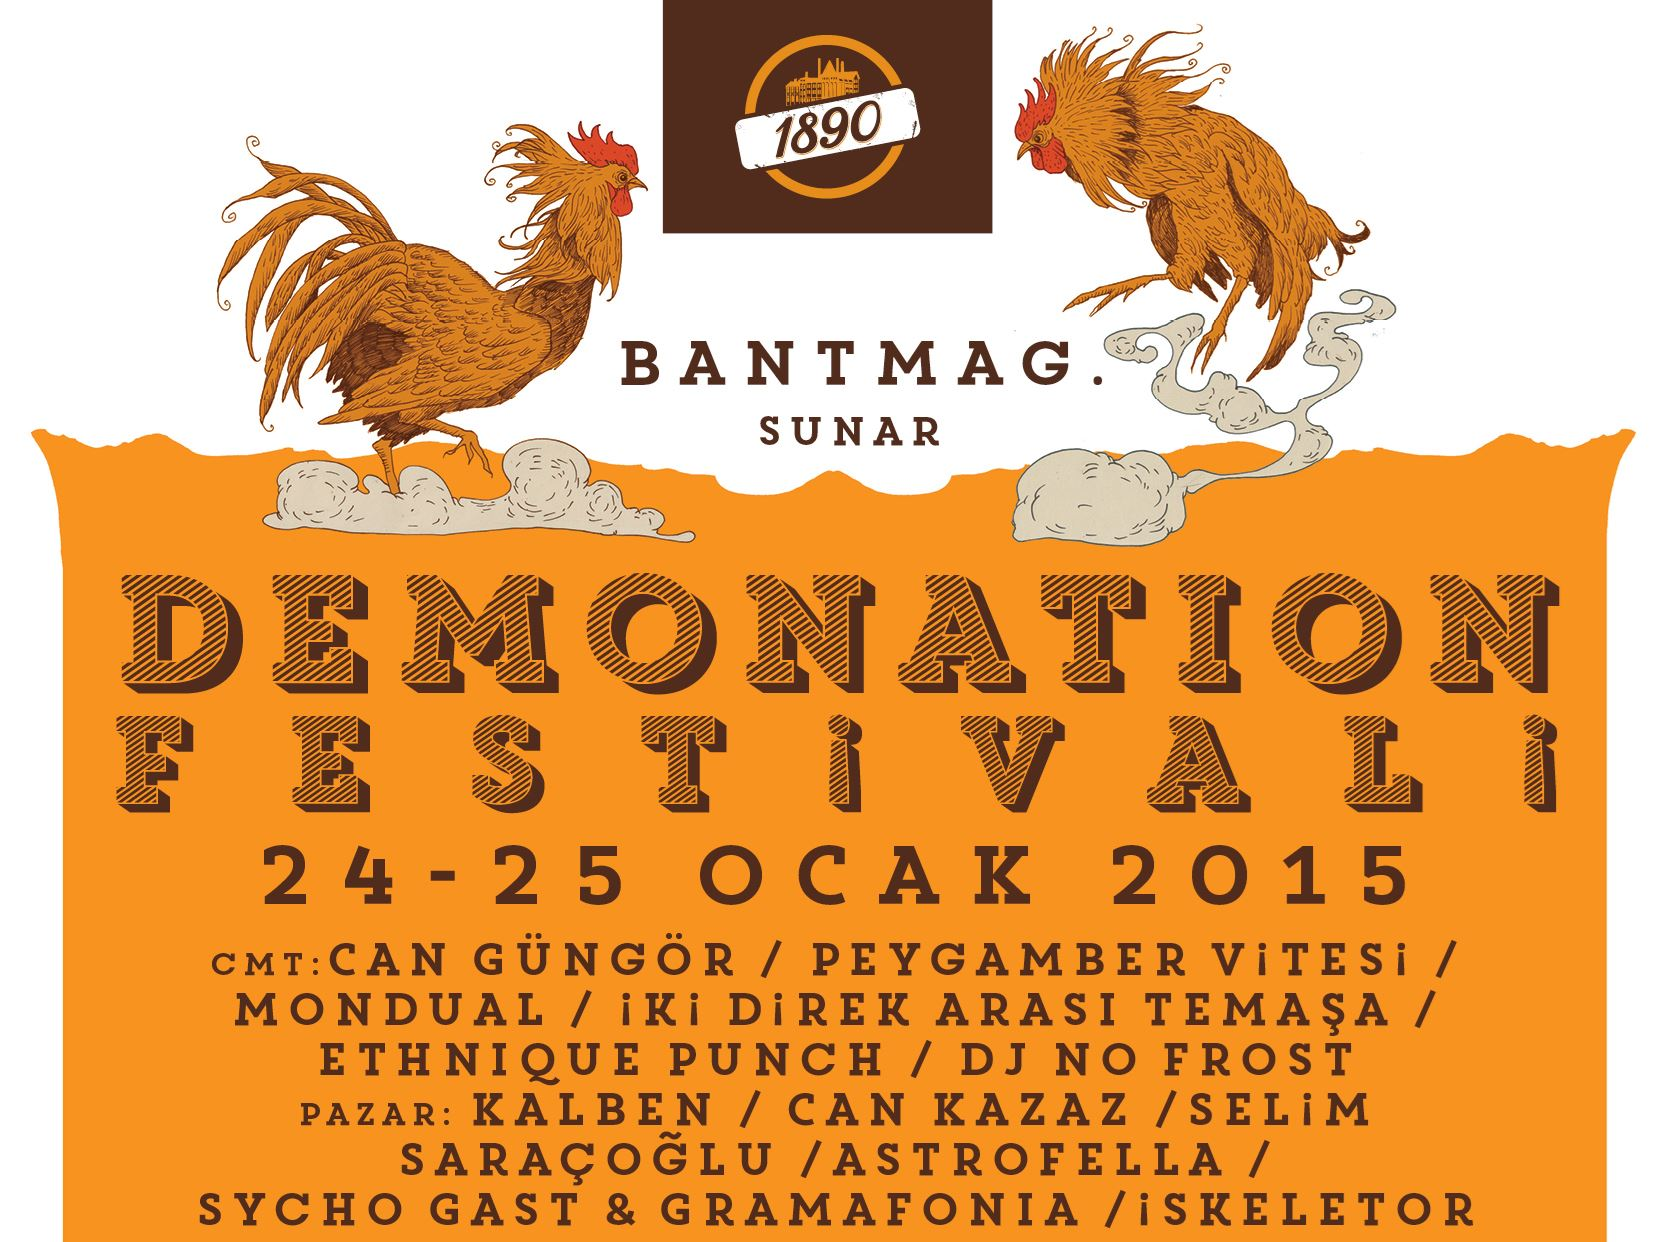 Bant Mag. sunar: Demonation Festivali No:5 - 2nd Day